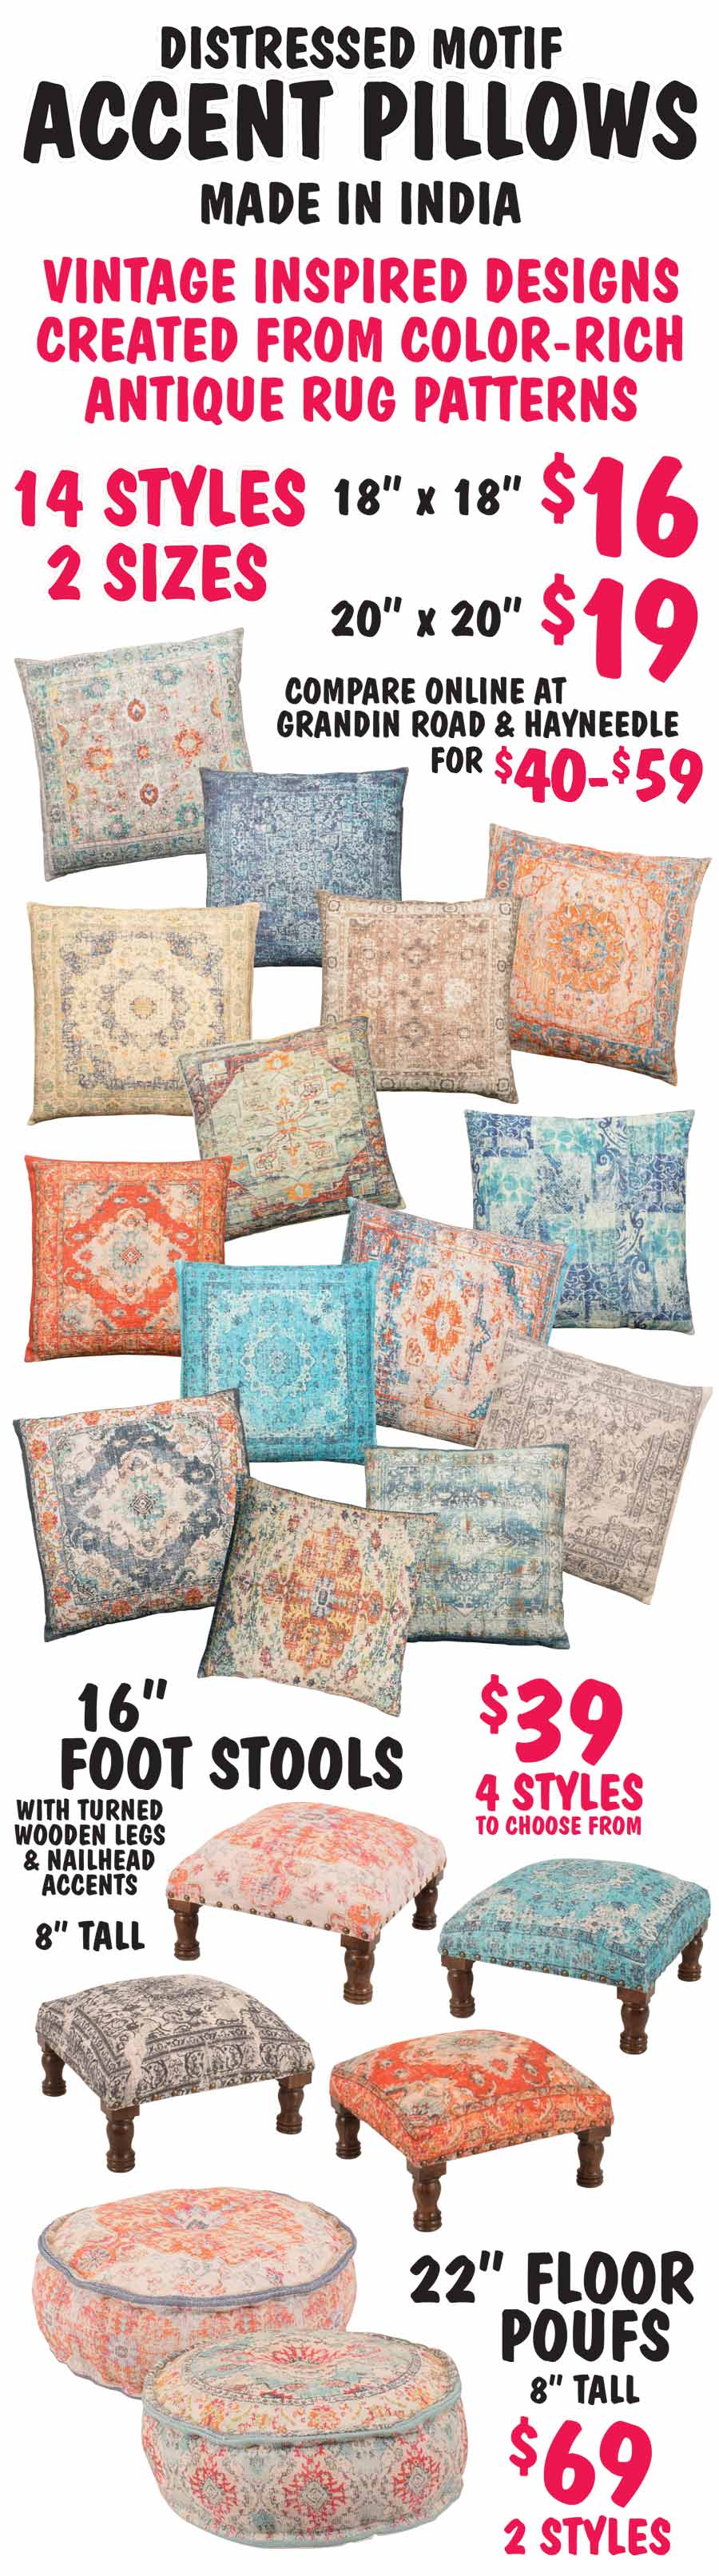 Distressed Motif Pillows, Foot Stools, and Floor Poufs starting at $16